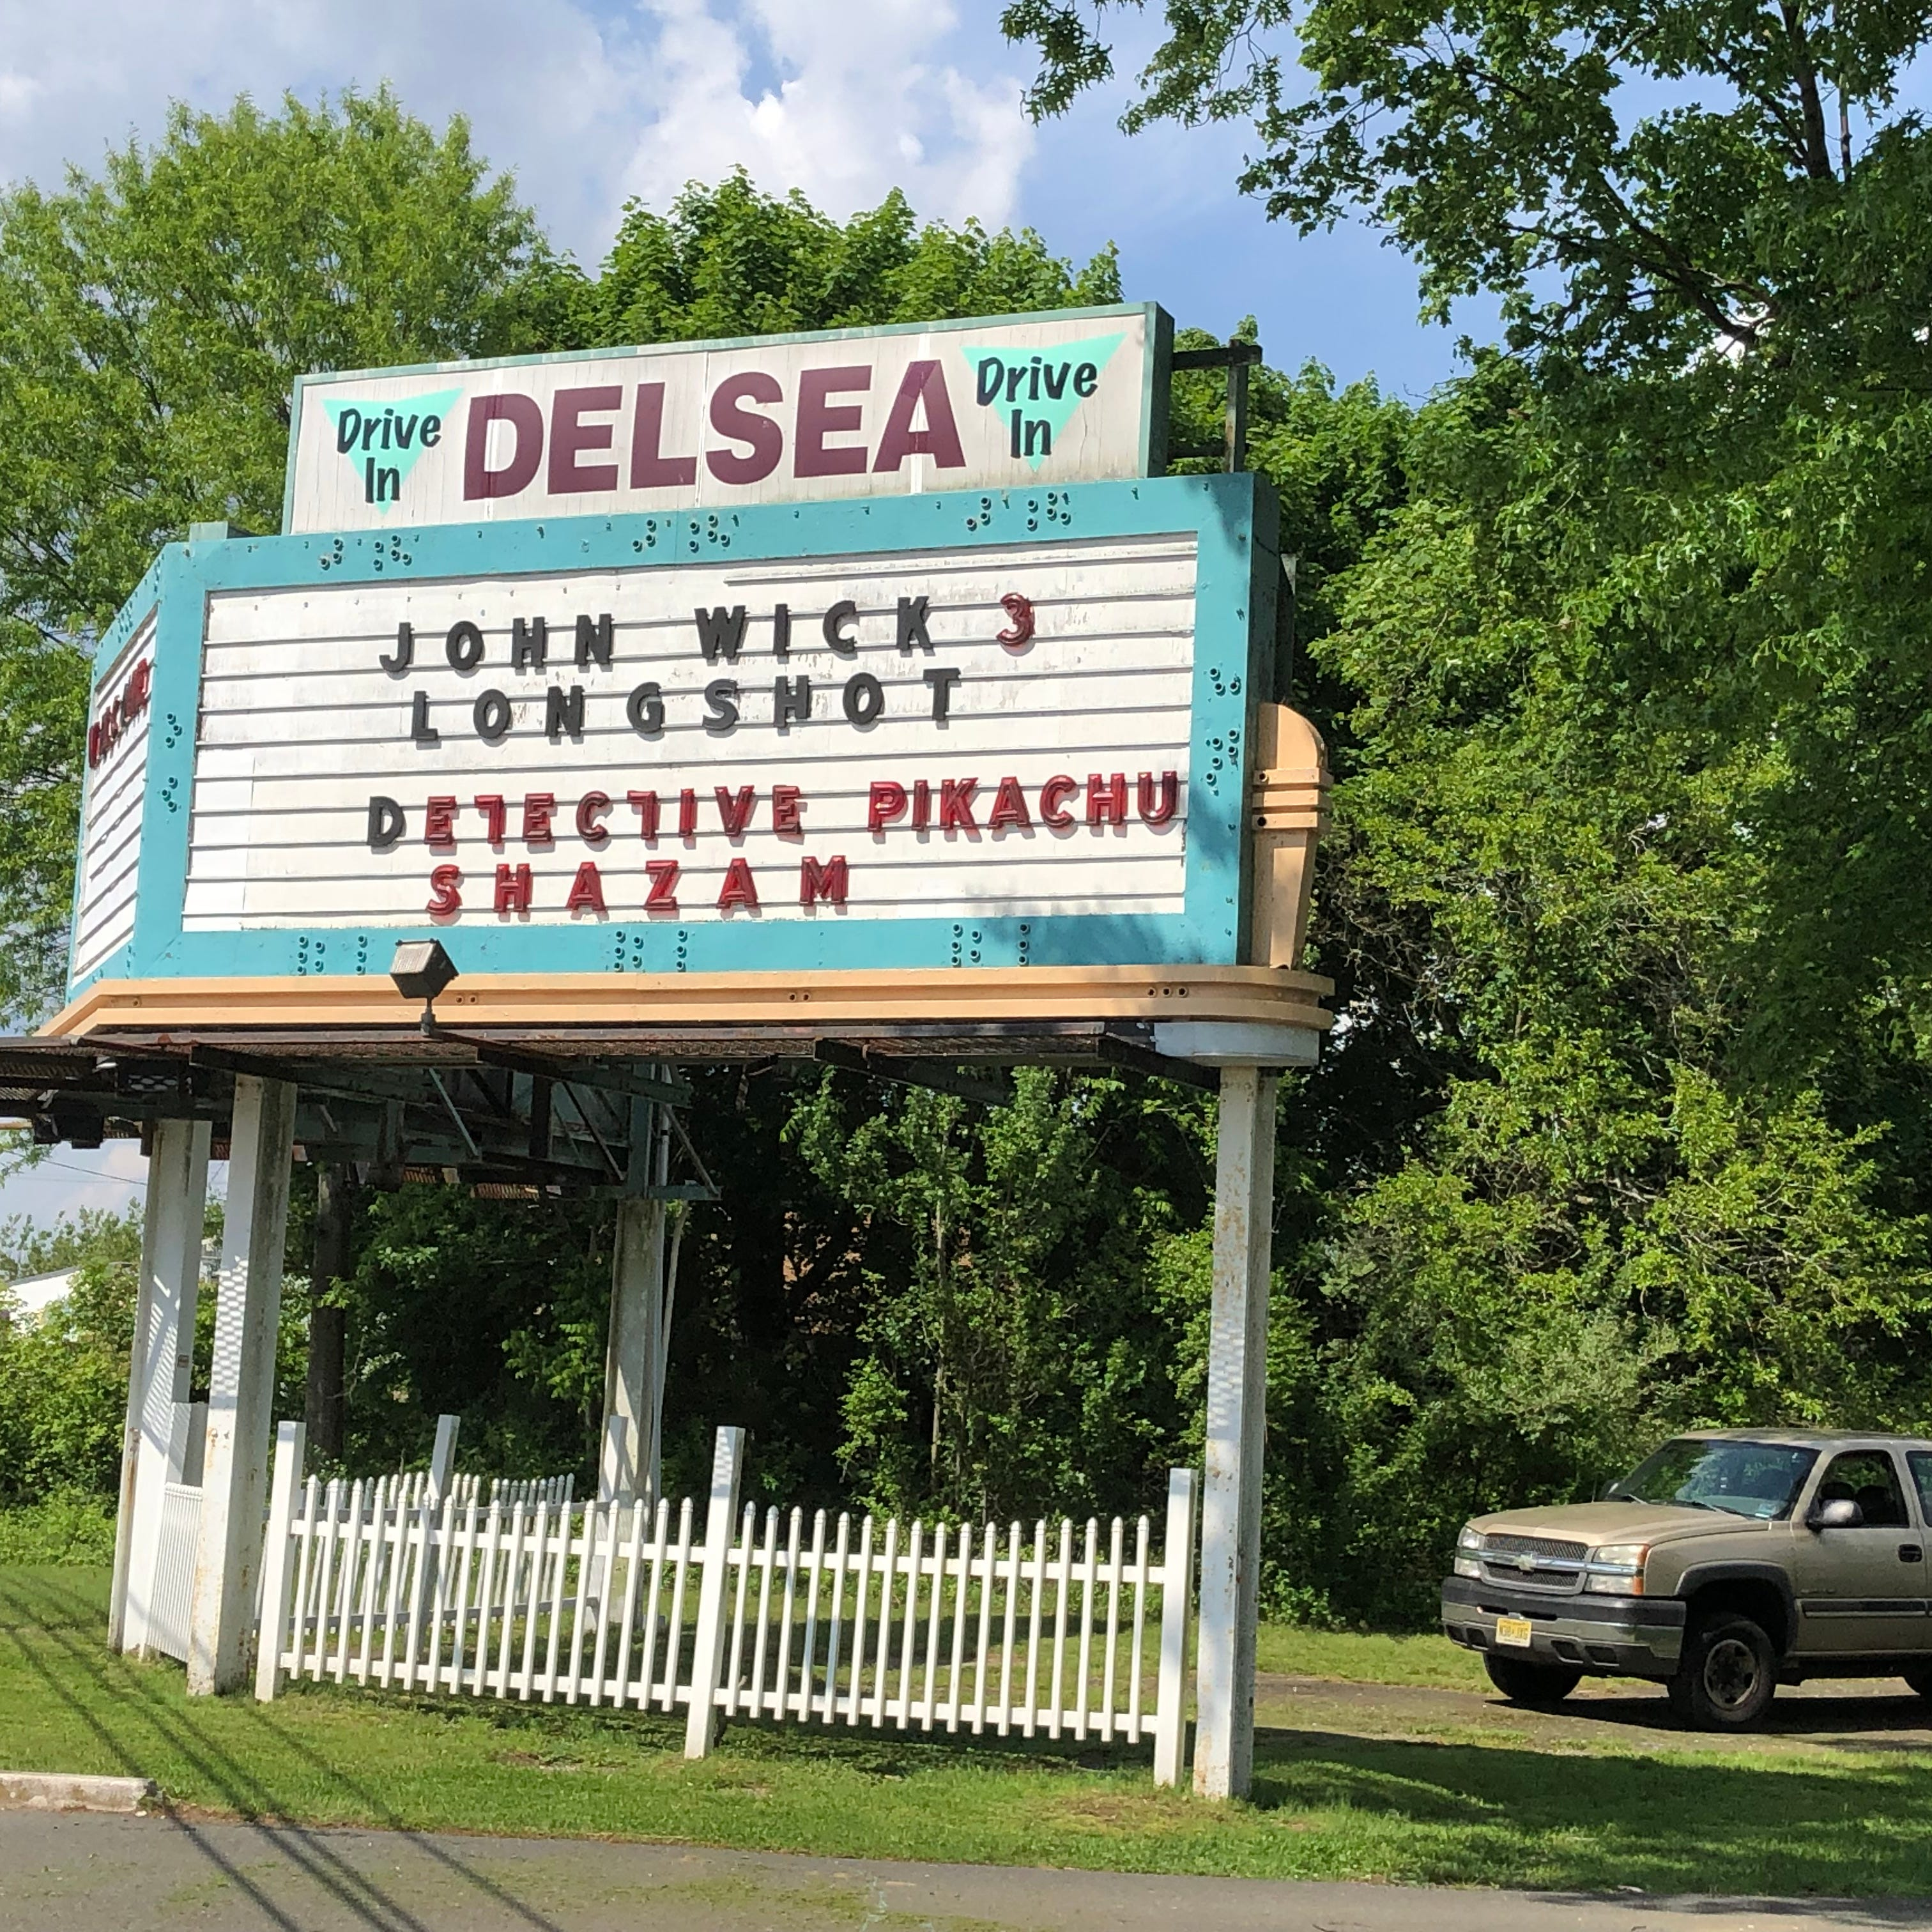 Coming attraction: Delsea Drive-in Theatre adds additional day to lineup